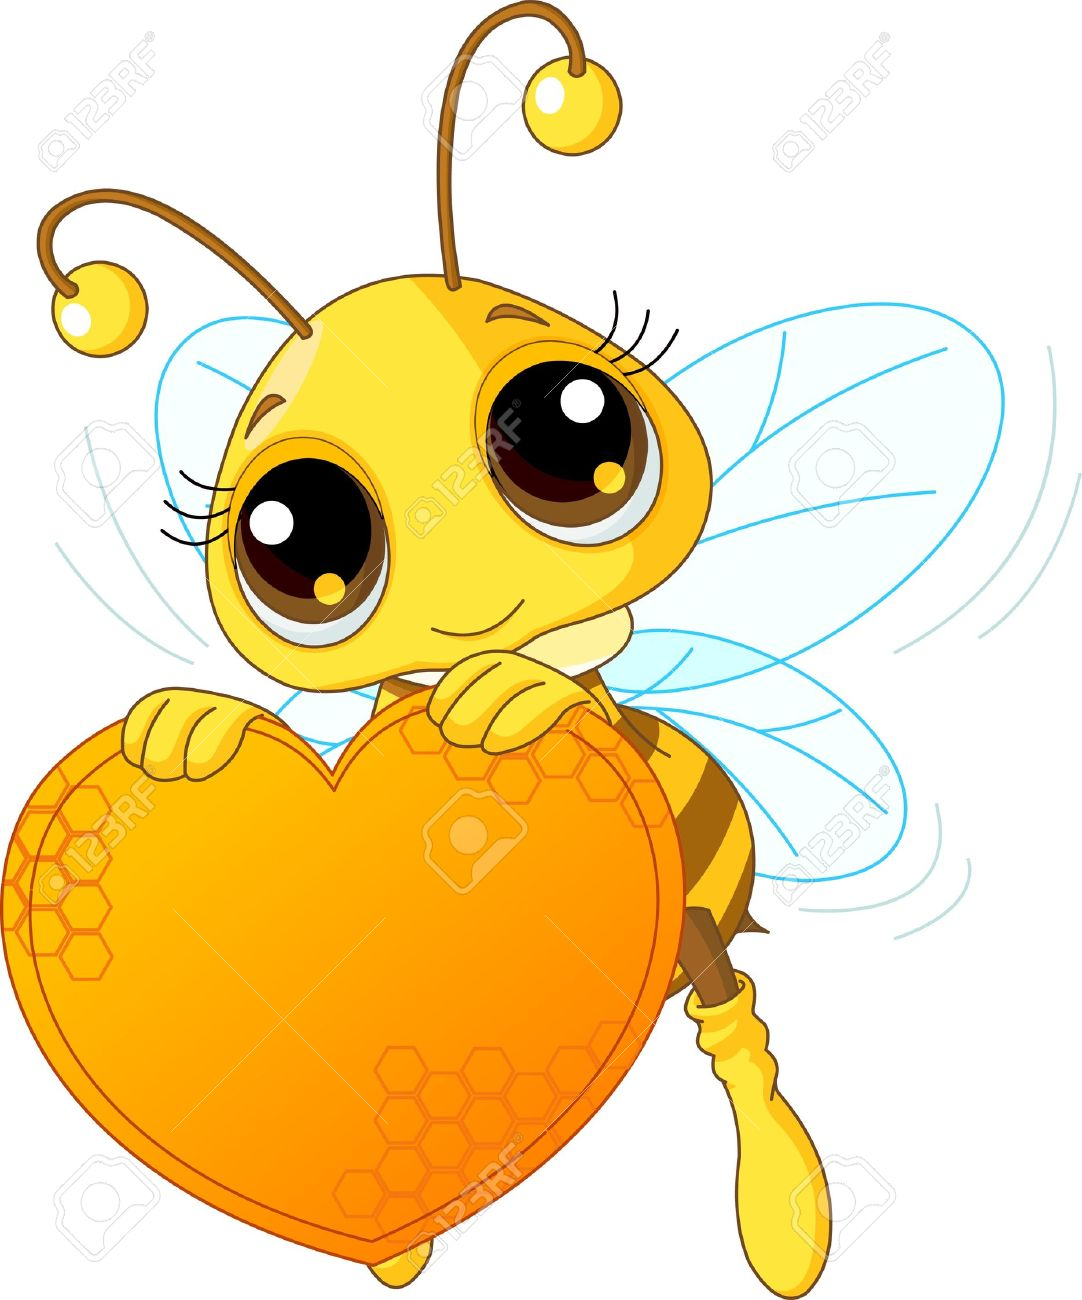 Cute bee holding a sweet  heart with place for copy/text Stock Vector - 8723524